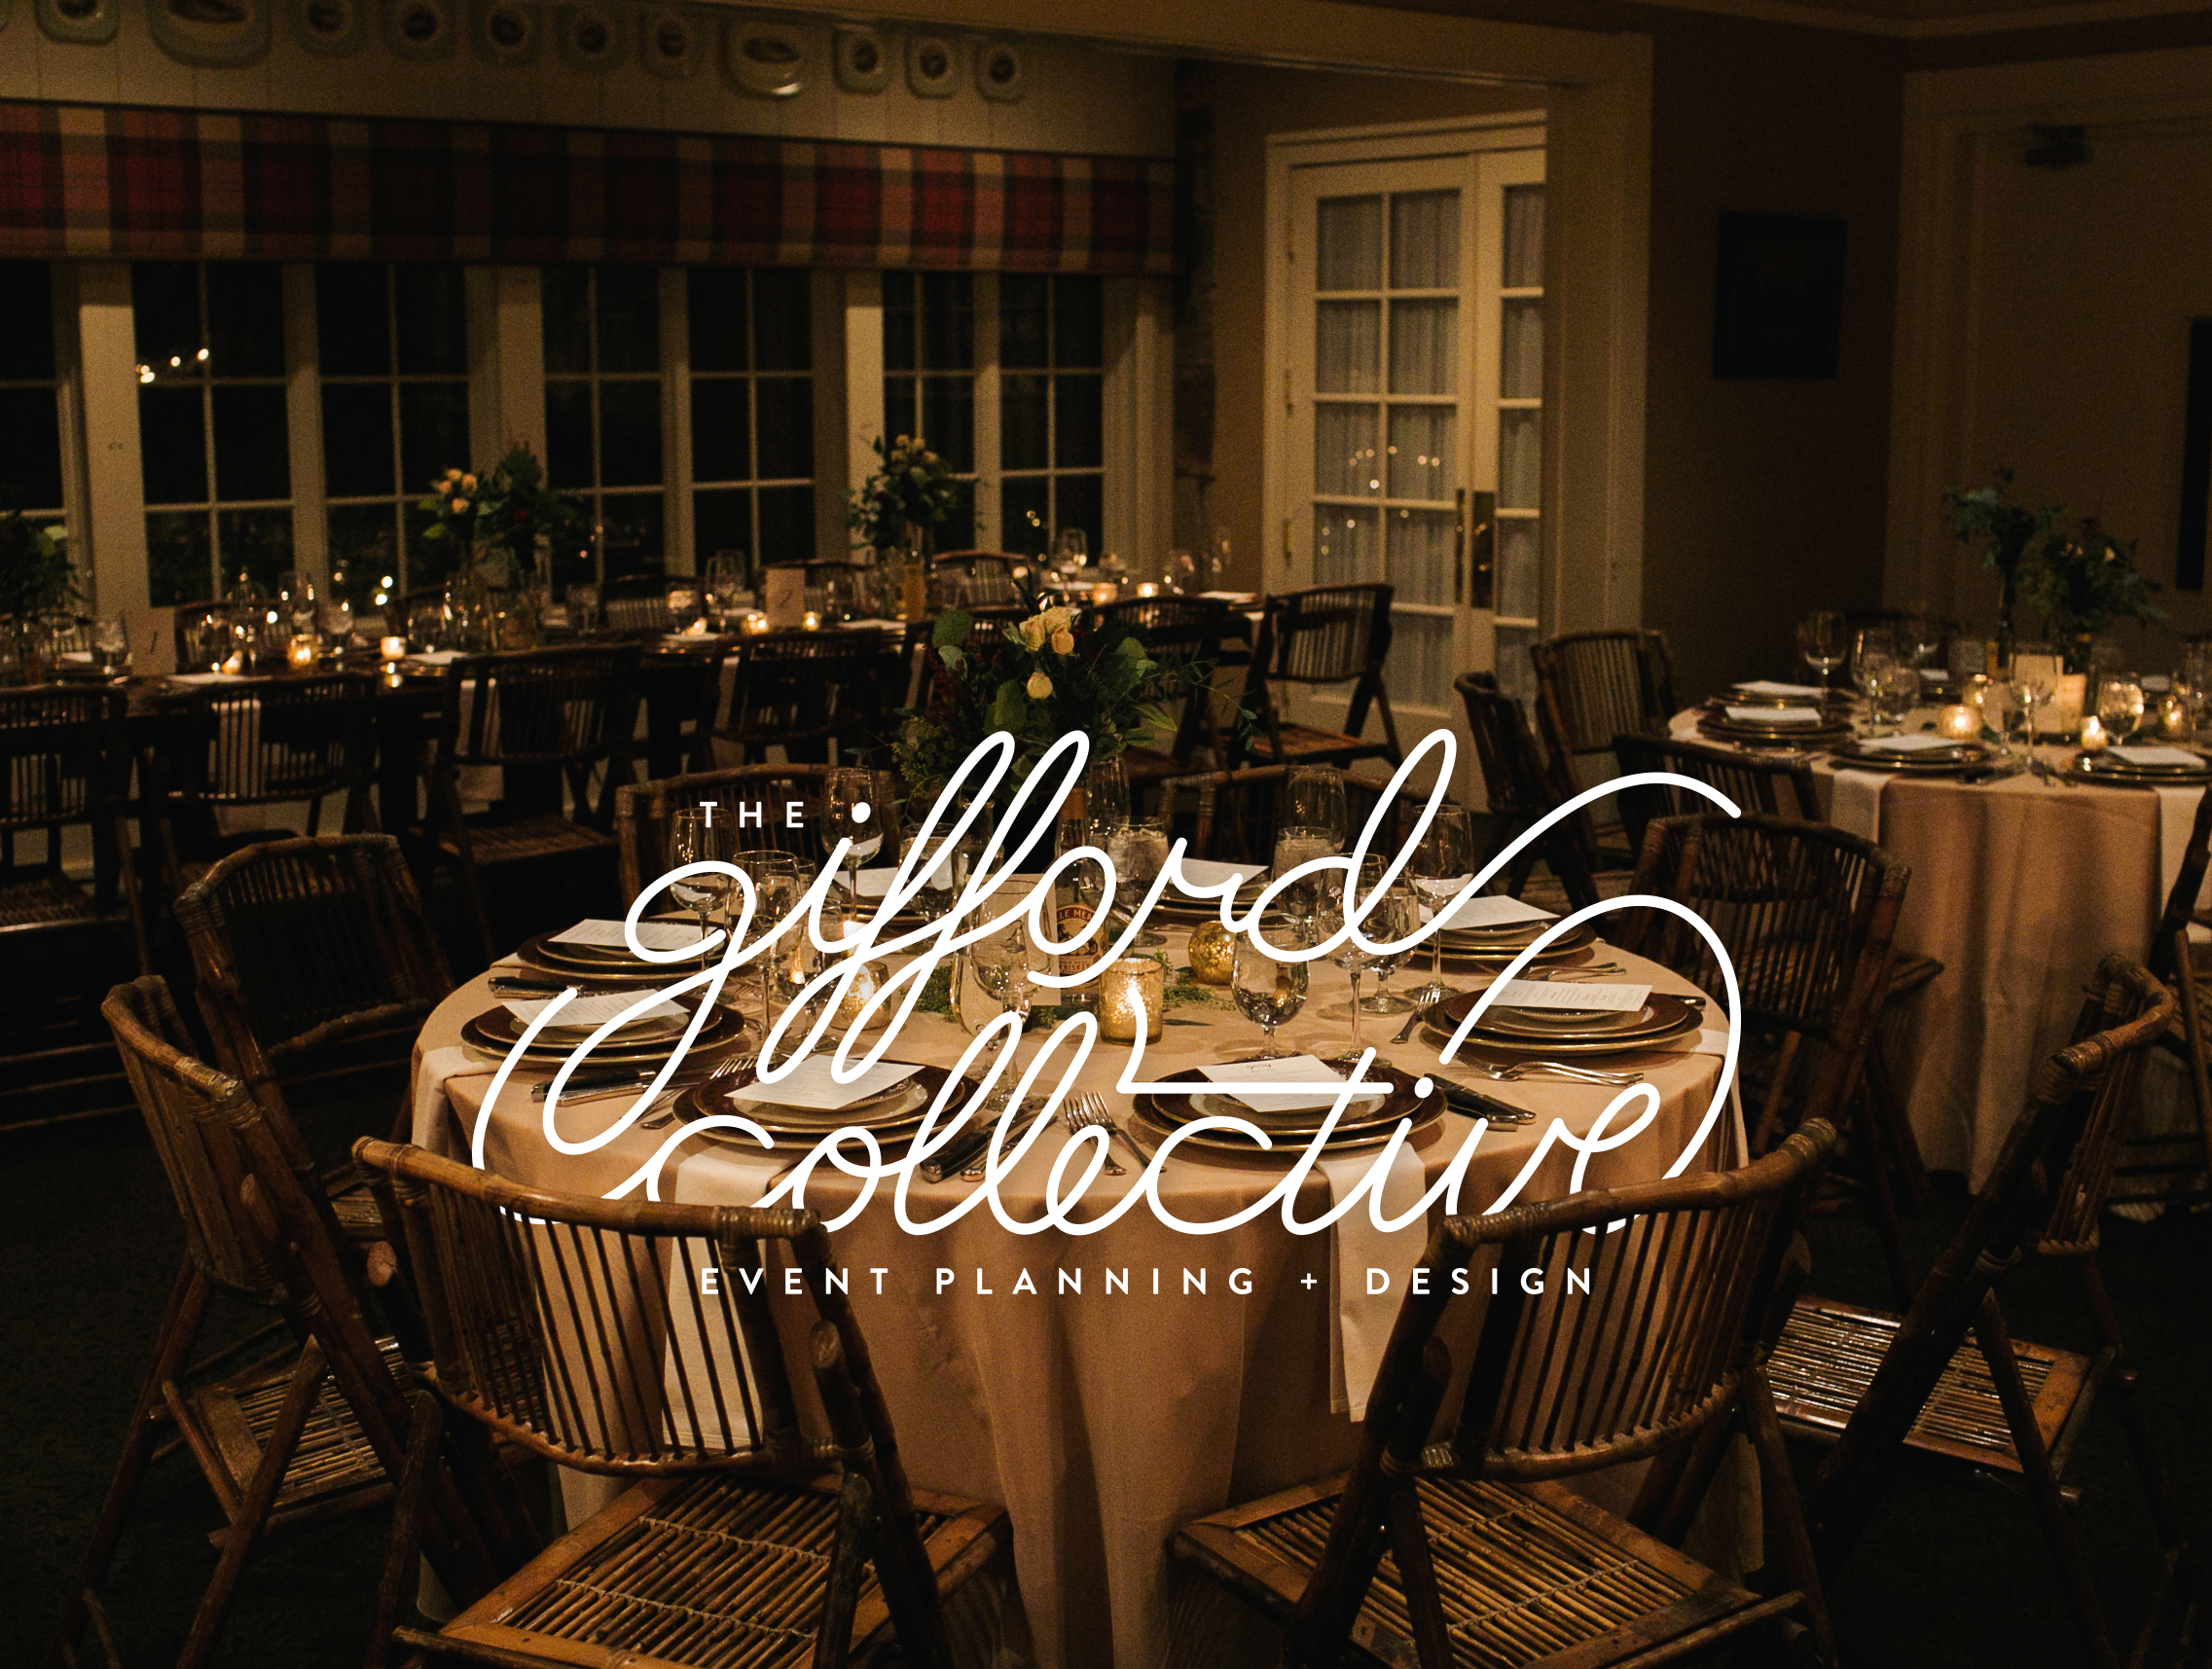 The Gifford Collective - The Gifford Collective (or TGC) is an event planning and design company run by the lovely Kristin Huff Gifford. For this logo she wanted something sophisticatedly and not, too, girly.